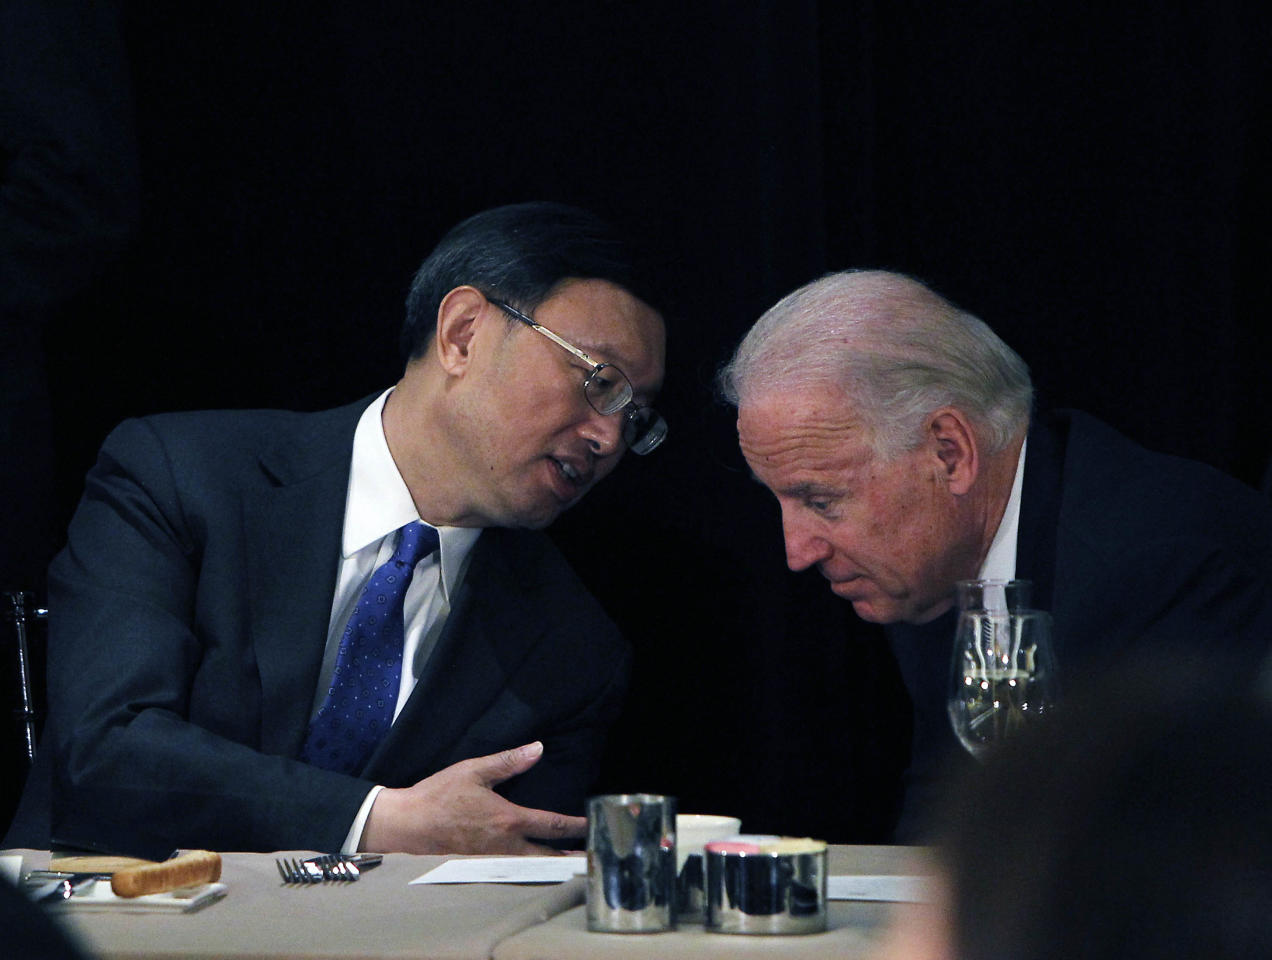 Chinese Foreign Minister Yang Jiechi, left, talks with U.S. Vice President Joe Biden, as China Vice President Xi Jinping, not seen, addresses a luncheon on Friday, Feb. 17, 2012 downtown Los Angeles. Xi is set to lead China for the coming decade, succeeding President Hu Jintao as Communist Party leader late this year, then becoming president in 2013. (AP Photo/Damian Dovarganes)